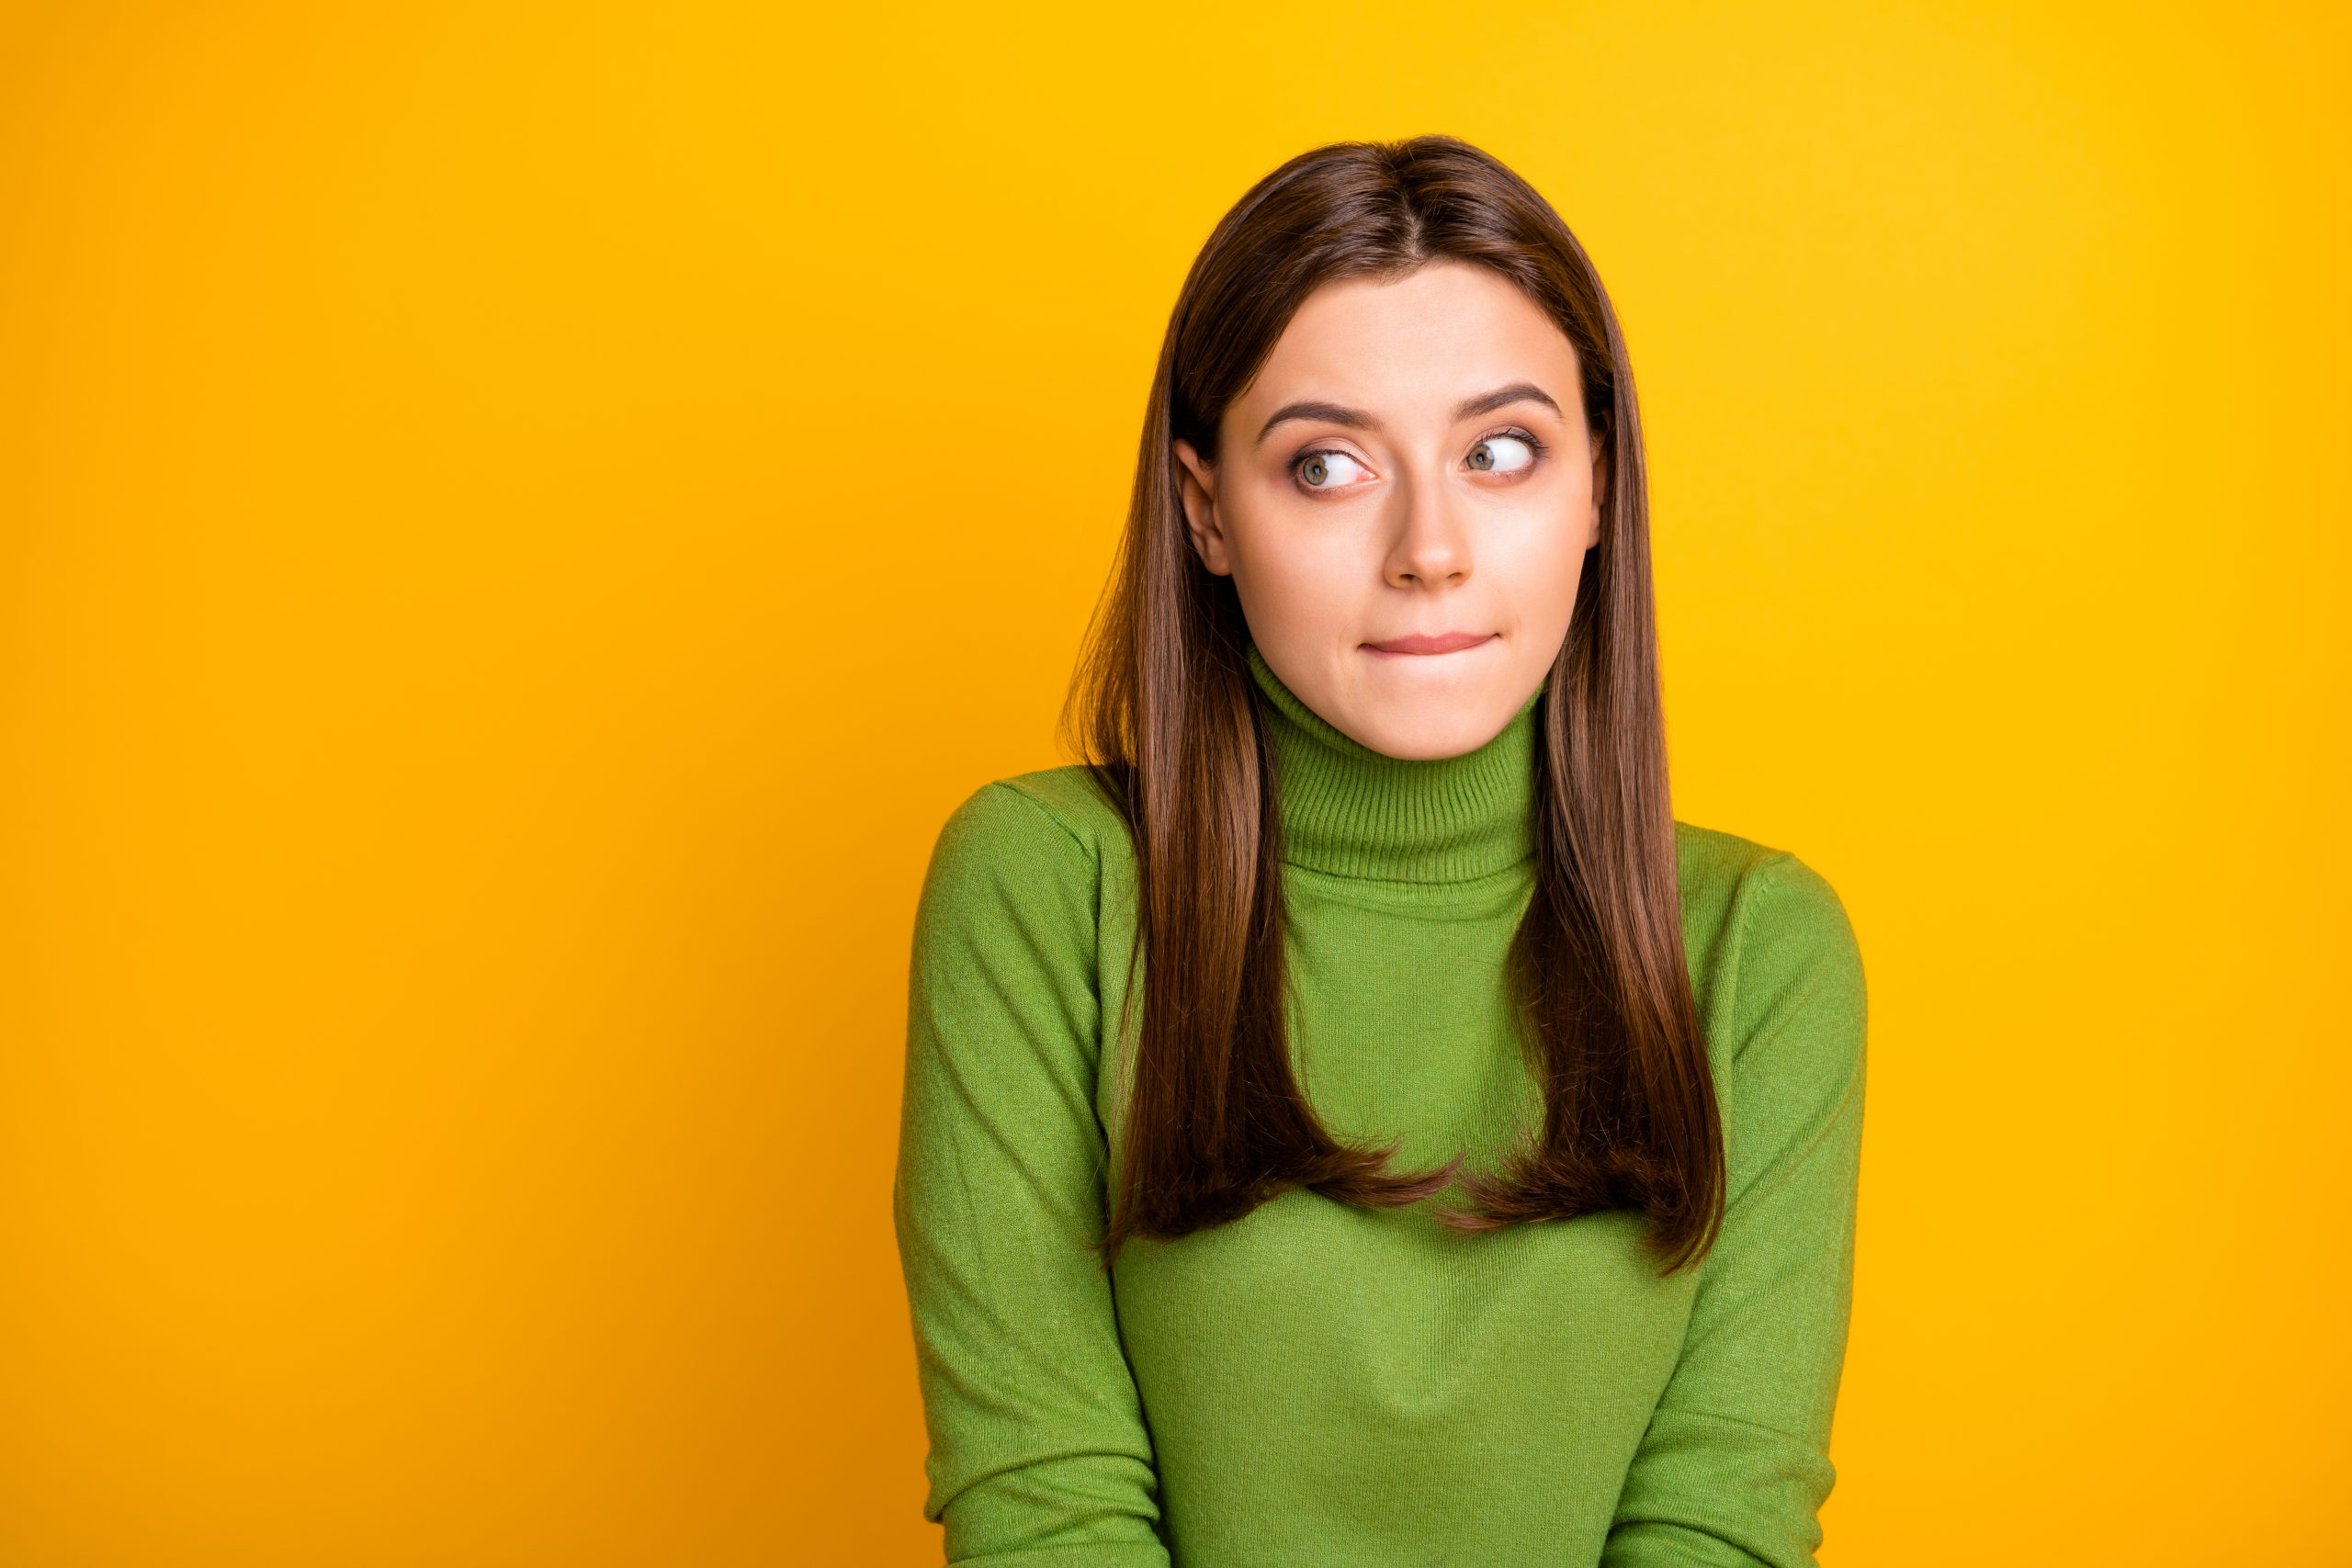 Portrait of scared frightened girl made mistake look copyspace, bite lisp wear stylish clothing isolated over bright color background